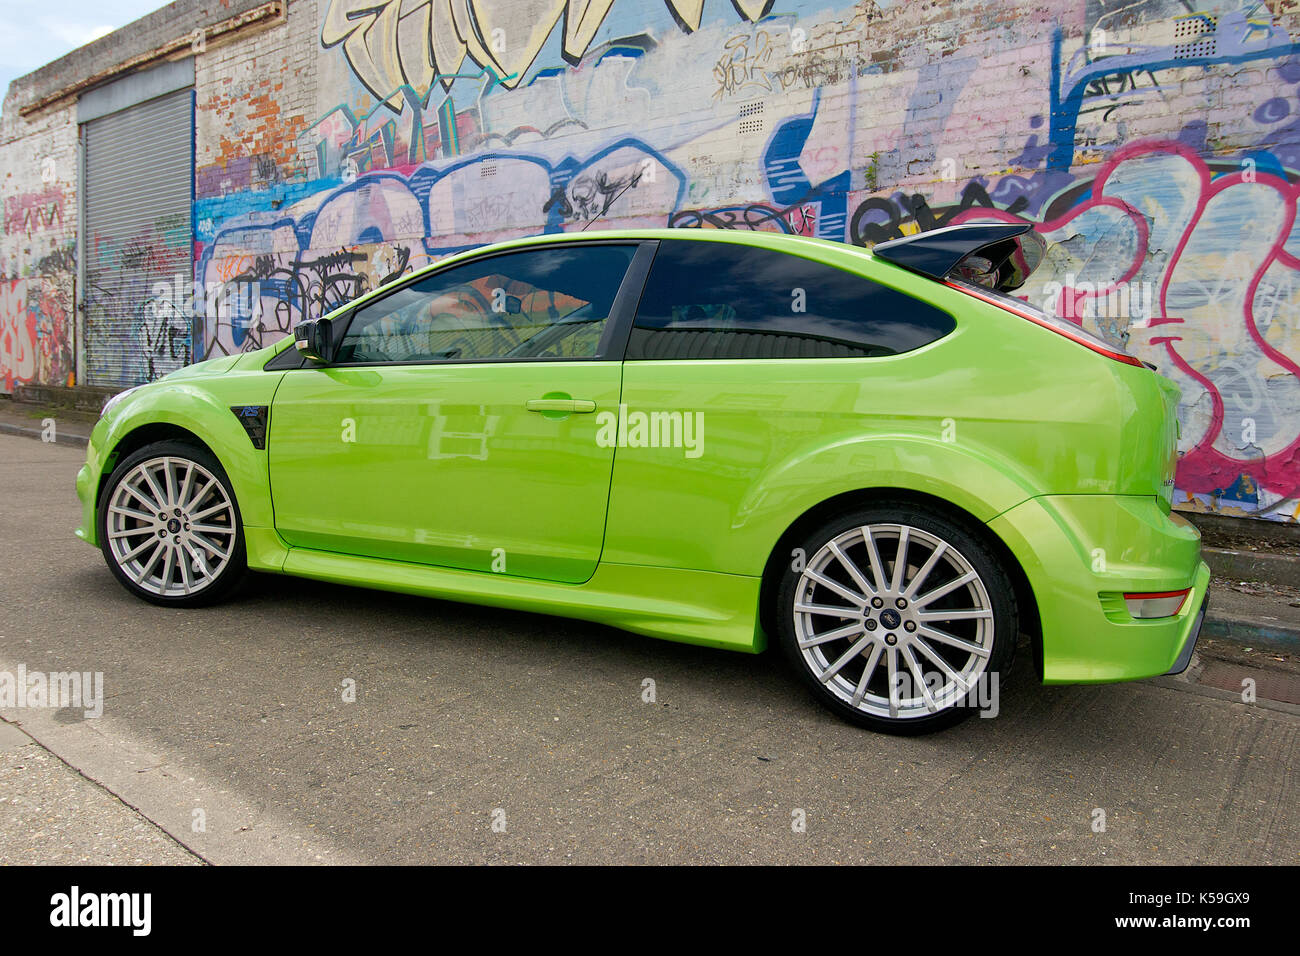 Lime Green Ford Focus Rs Against A Graffiti Covered Wall Stock Photo